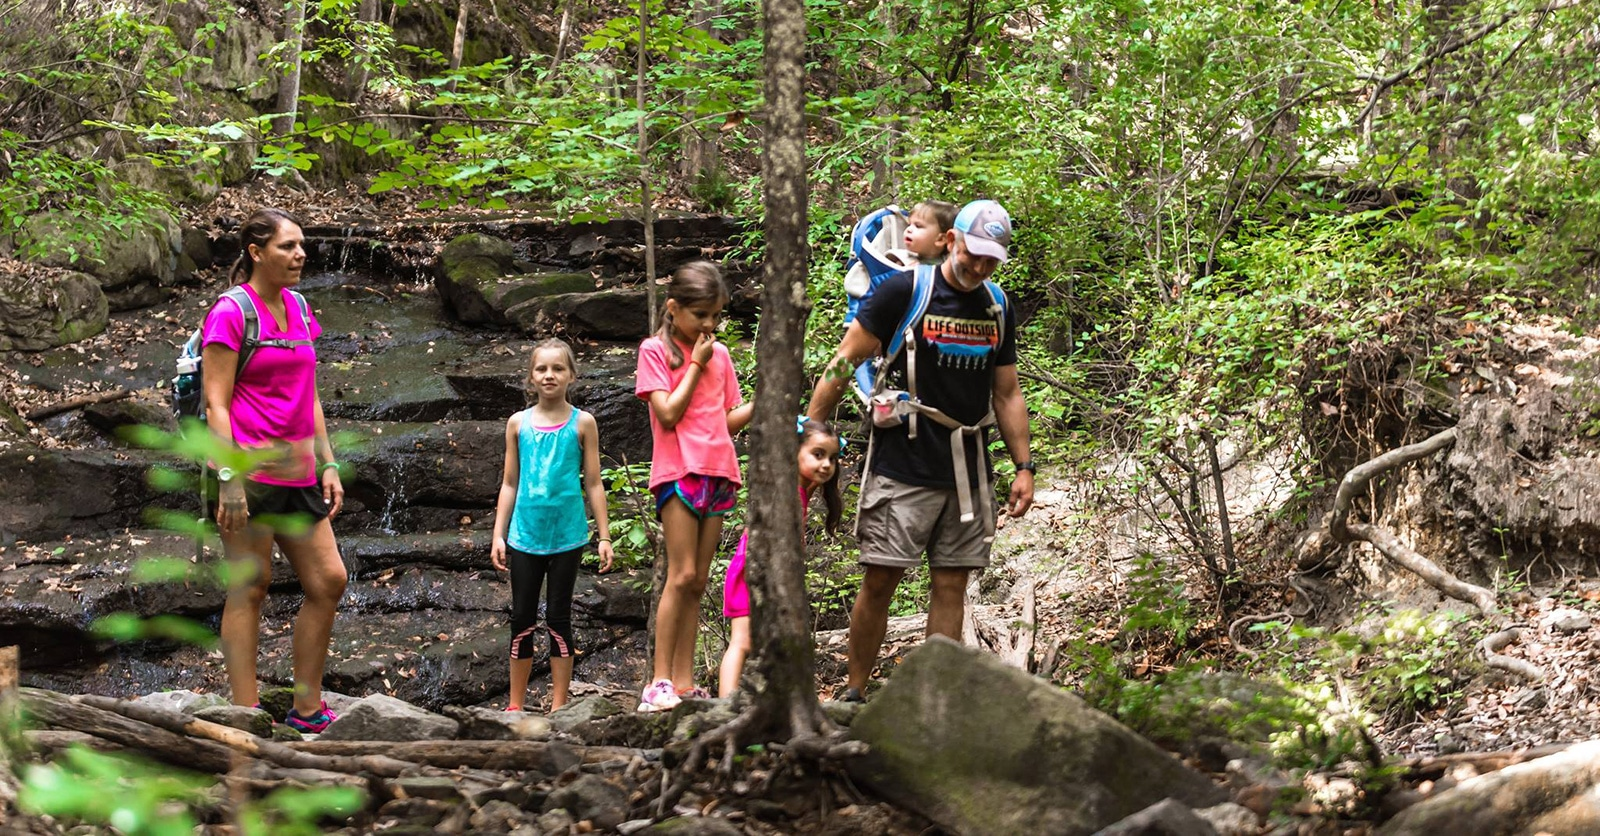 Family hiking in the woods